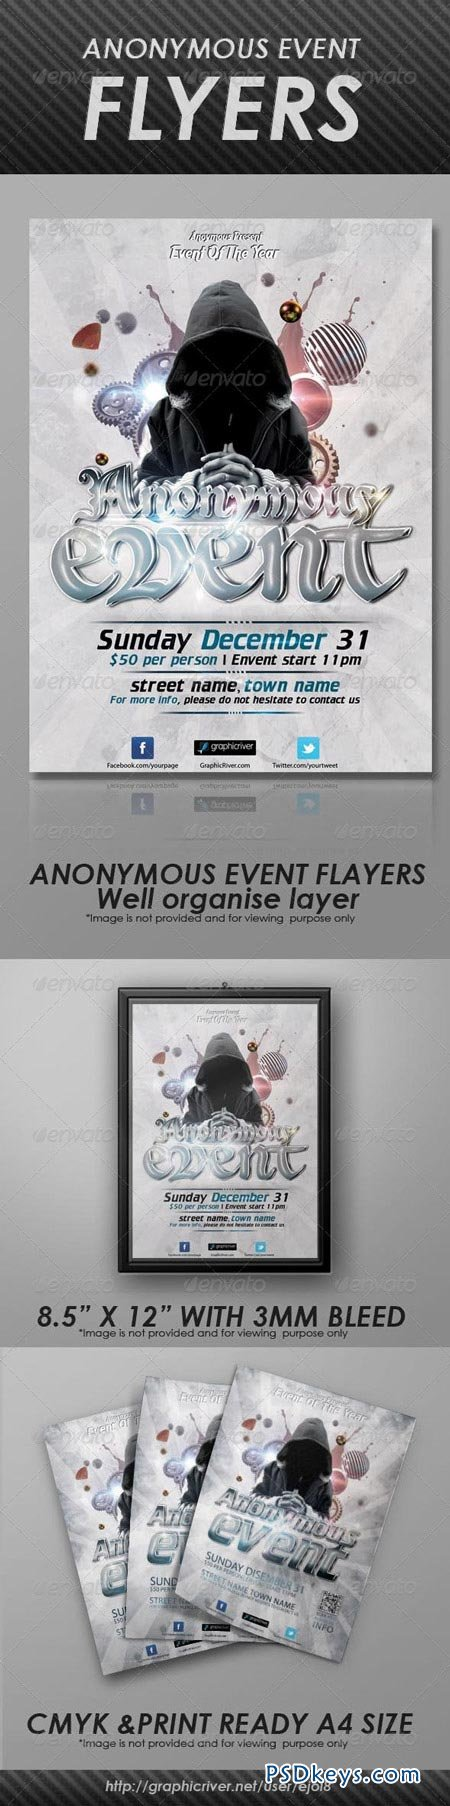 Anonymous Event Flyers 3205254